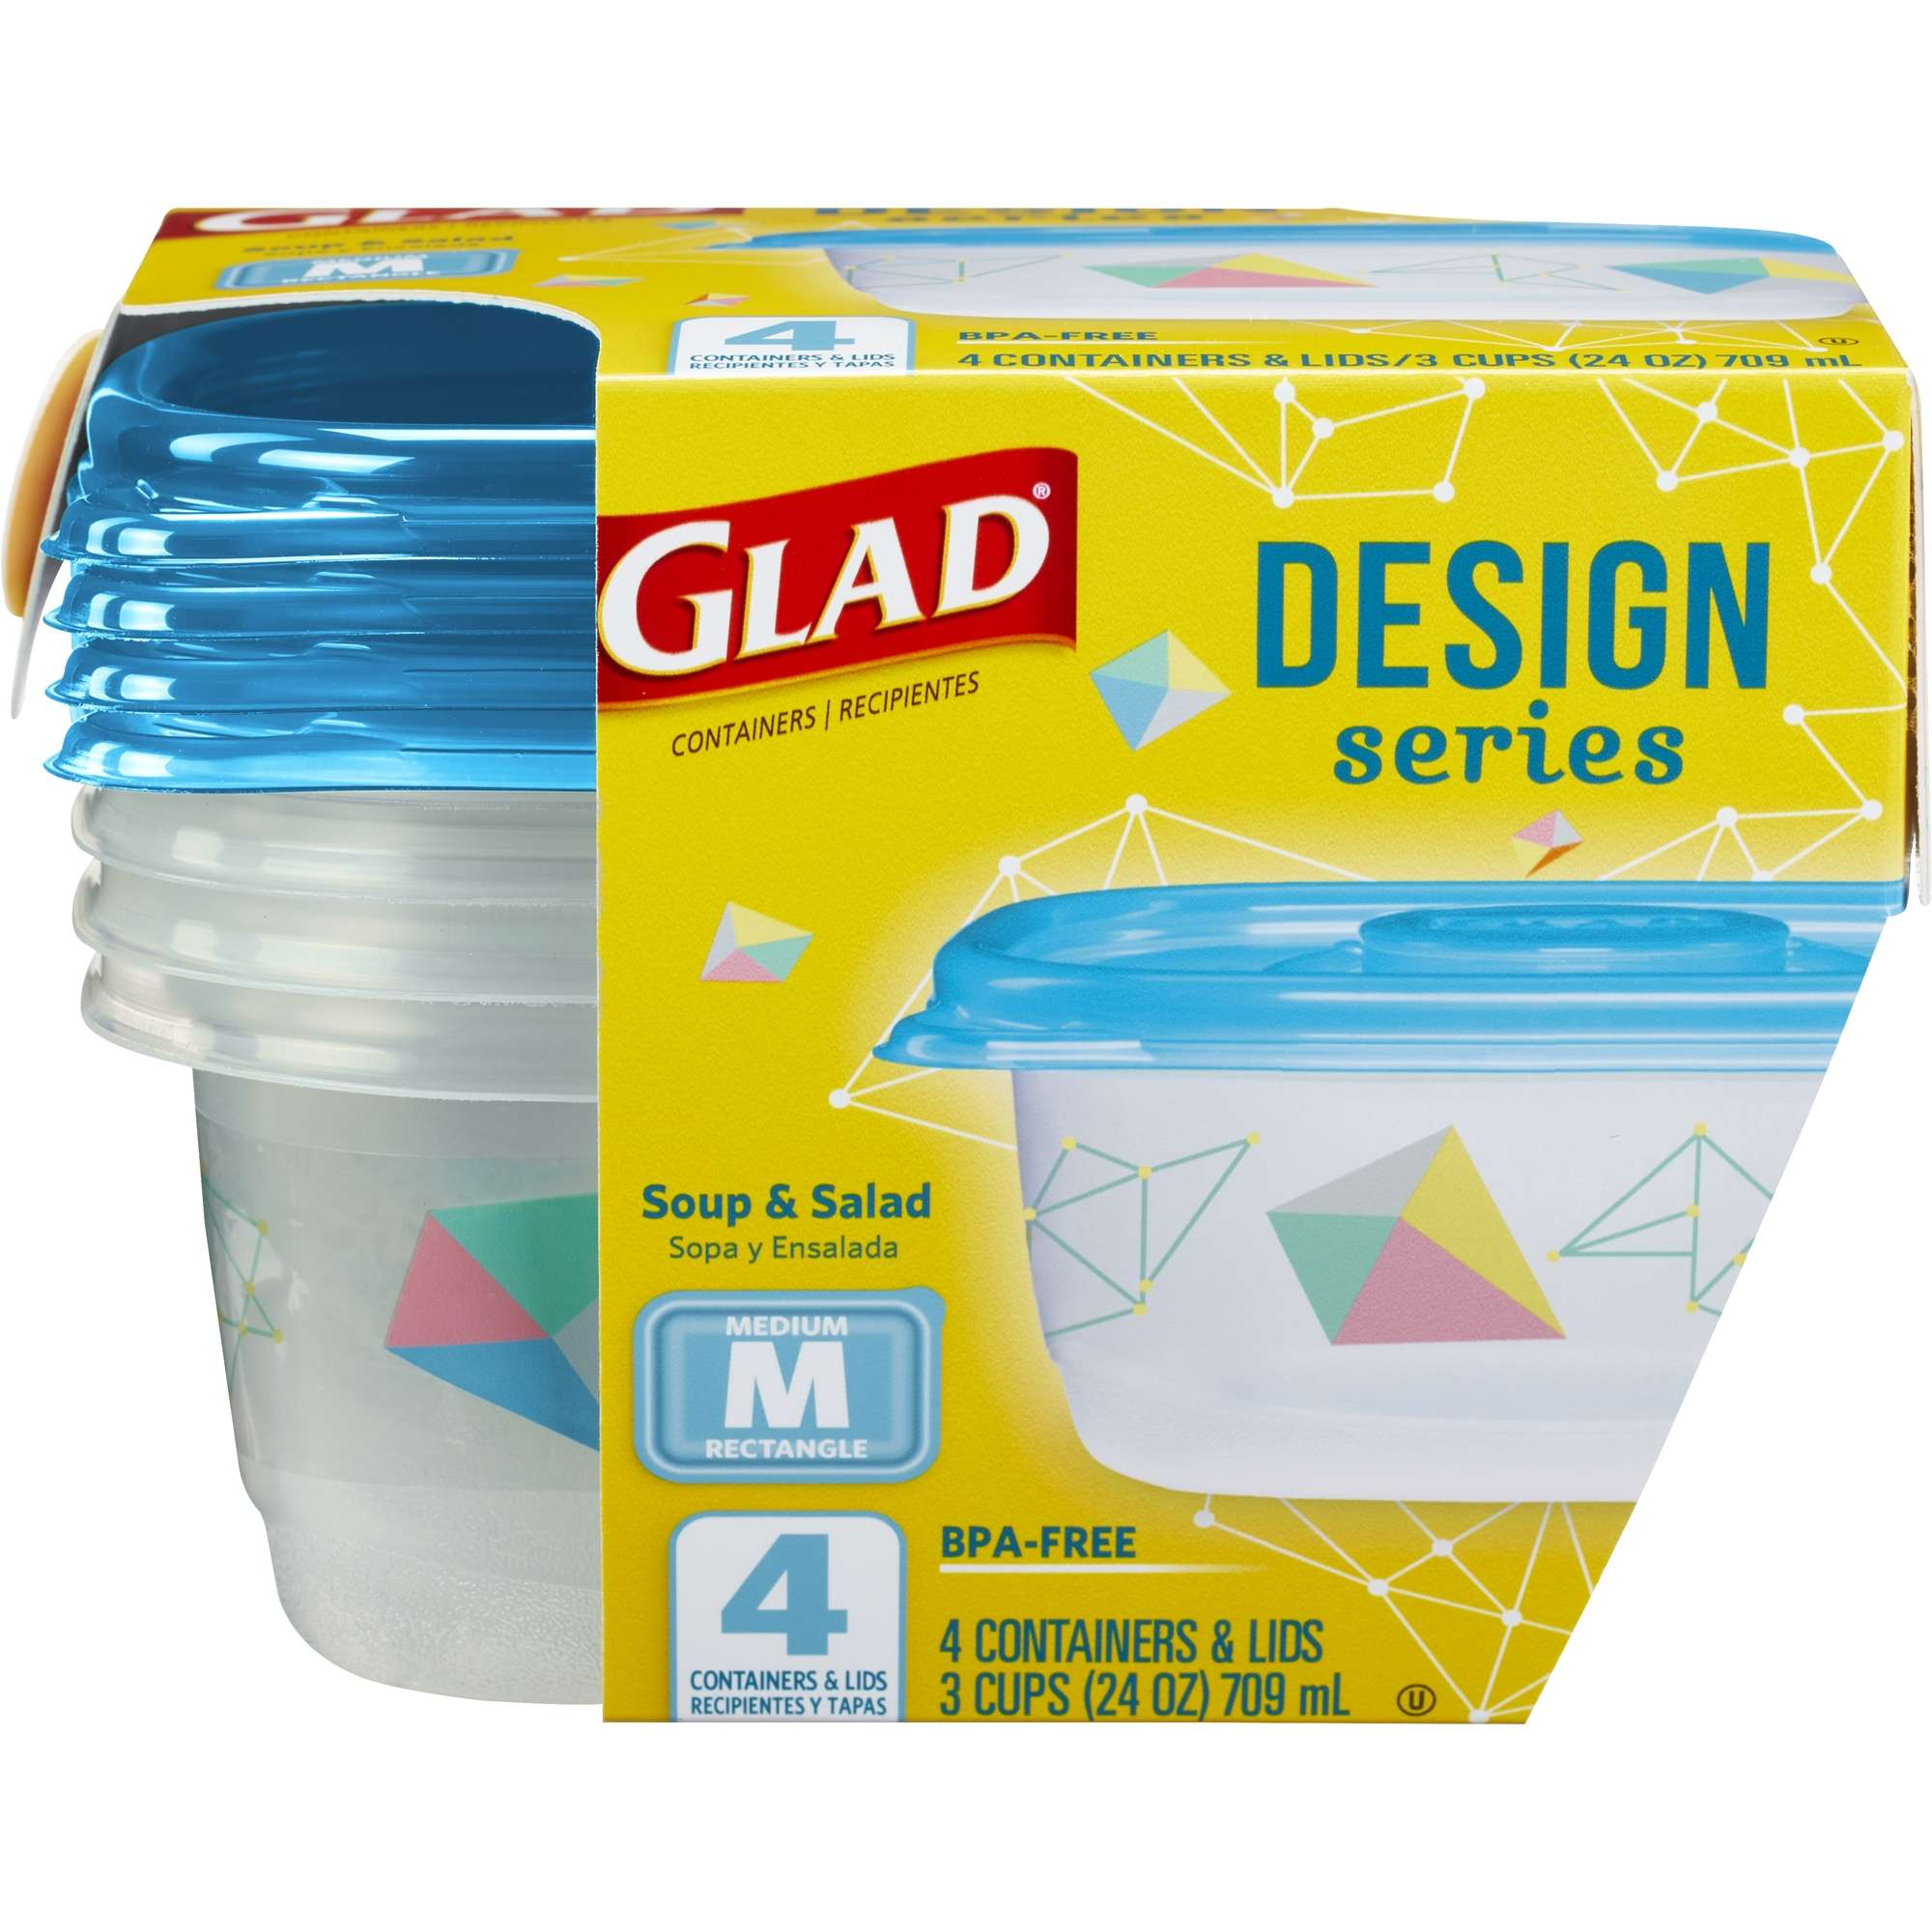 Glad Food Storage Containers, Designer Series, Medium Rectangle, 24 oz, 4 ct